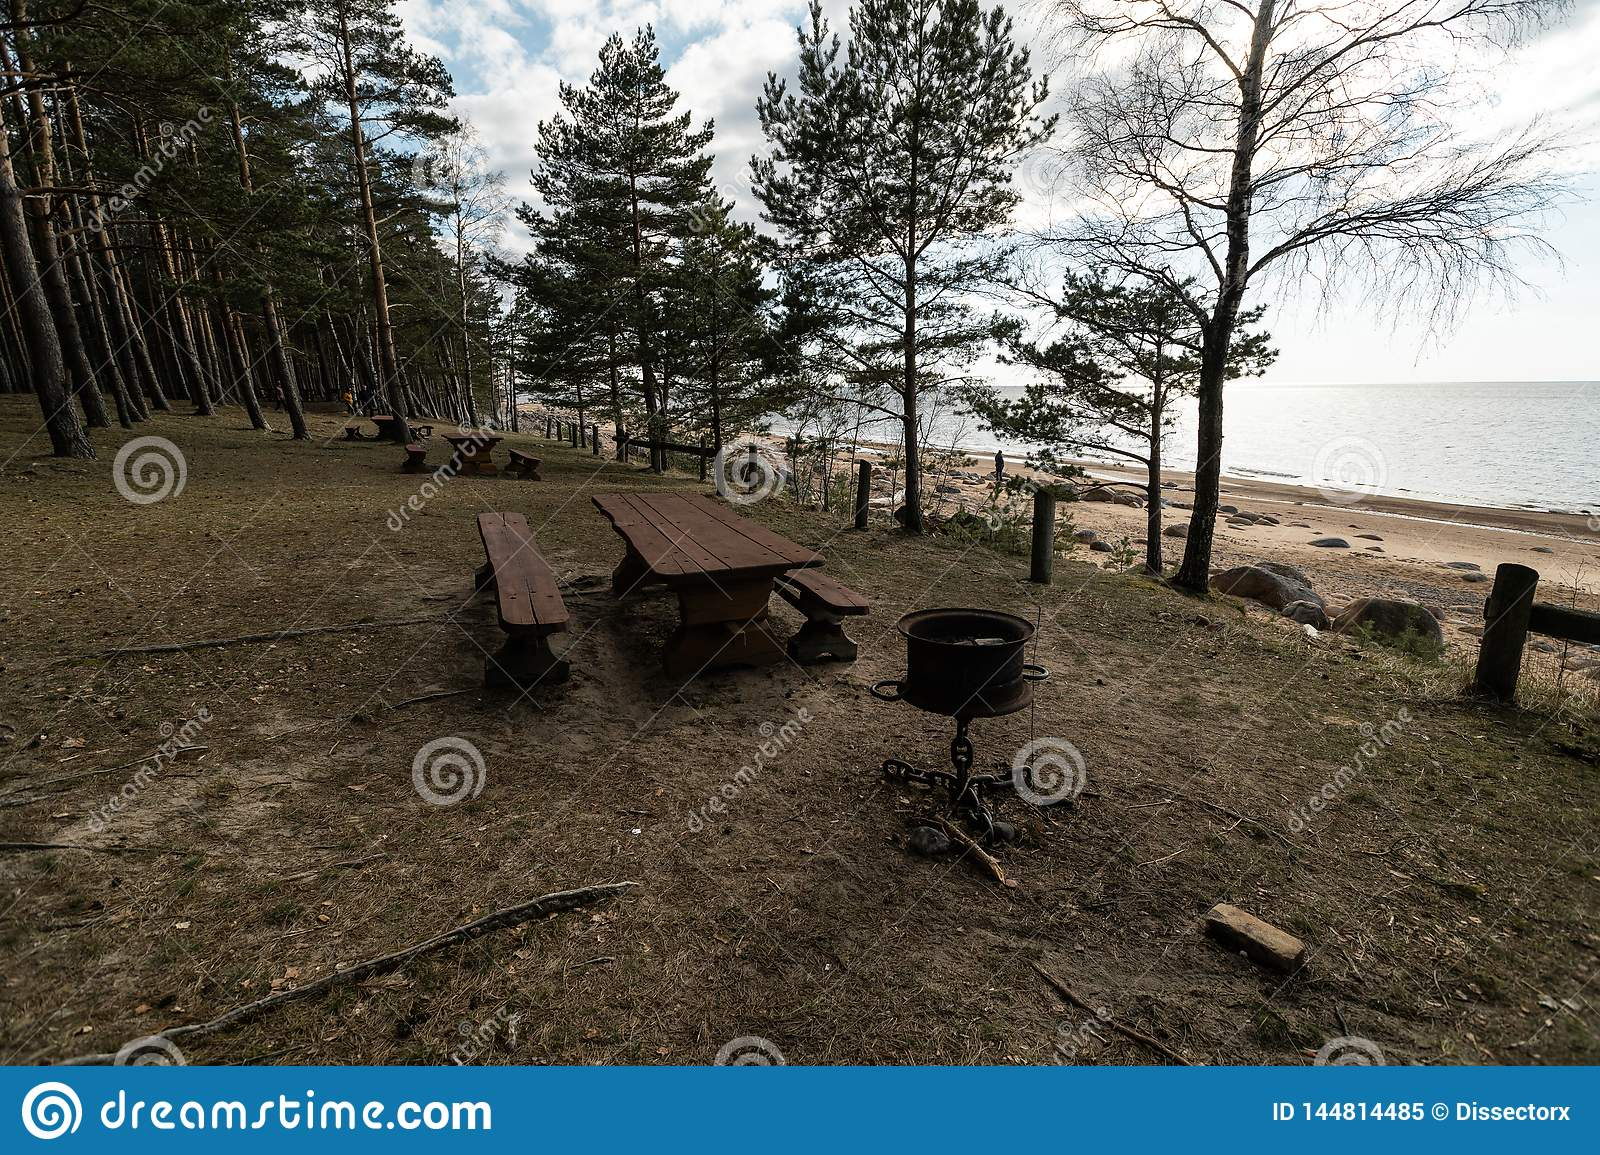 Beautiful distant picnic and camping spot near a Baltic sea in a pine forest with a boulder beach in the background -